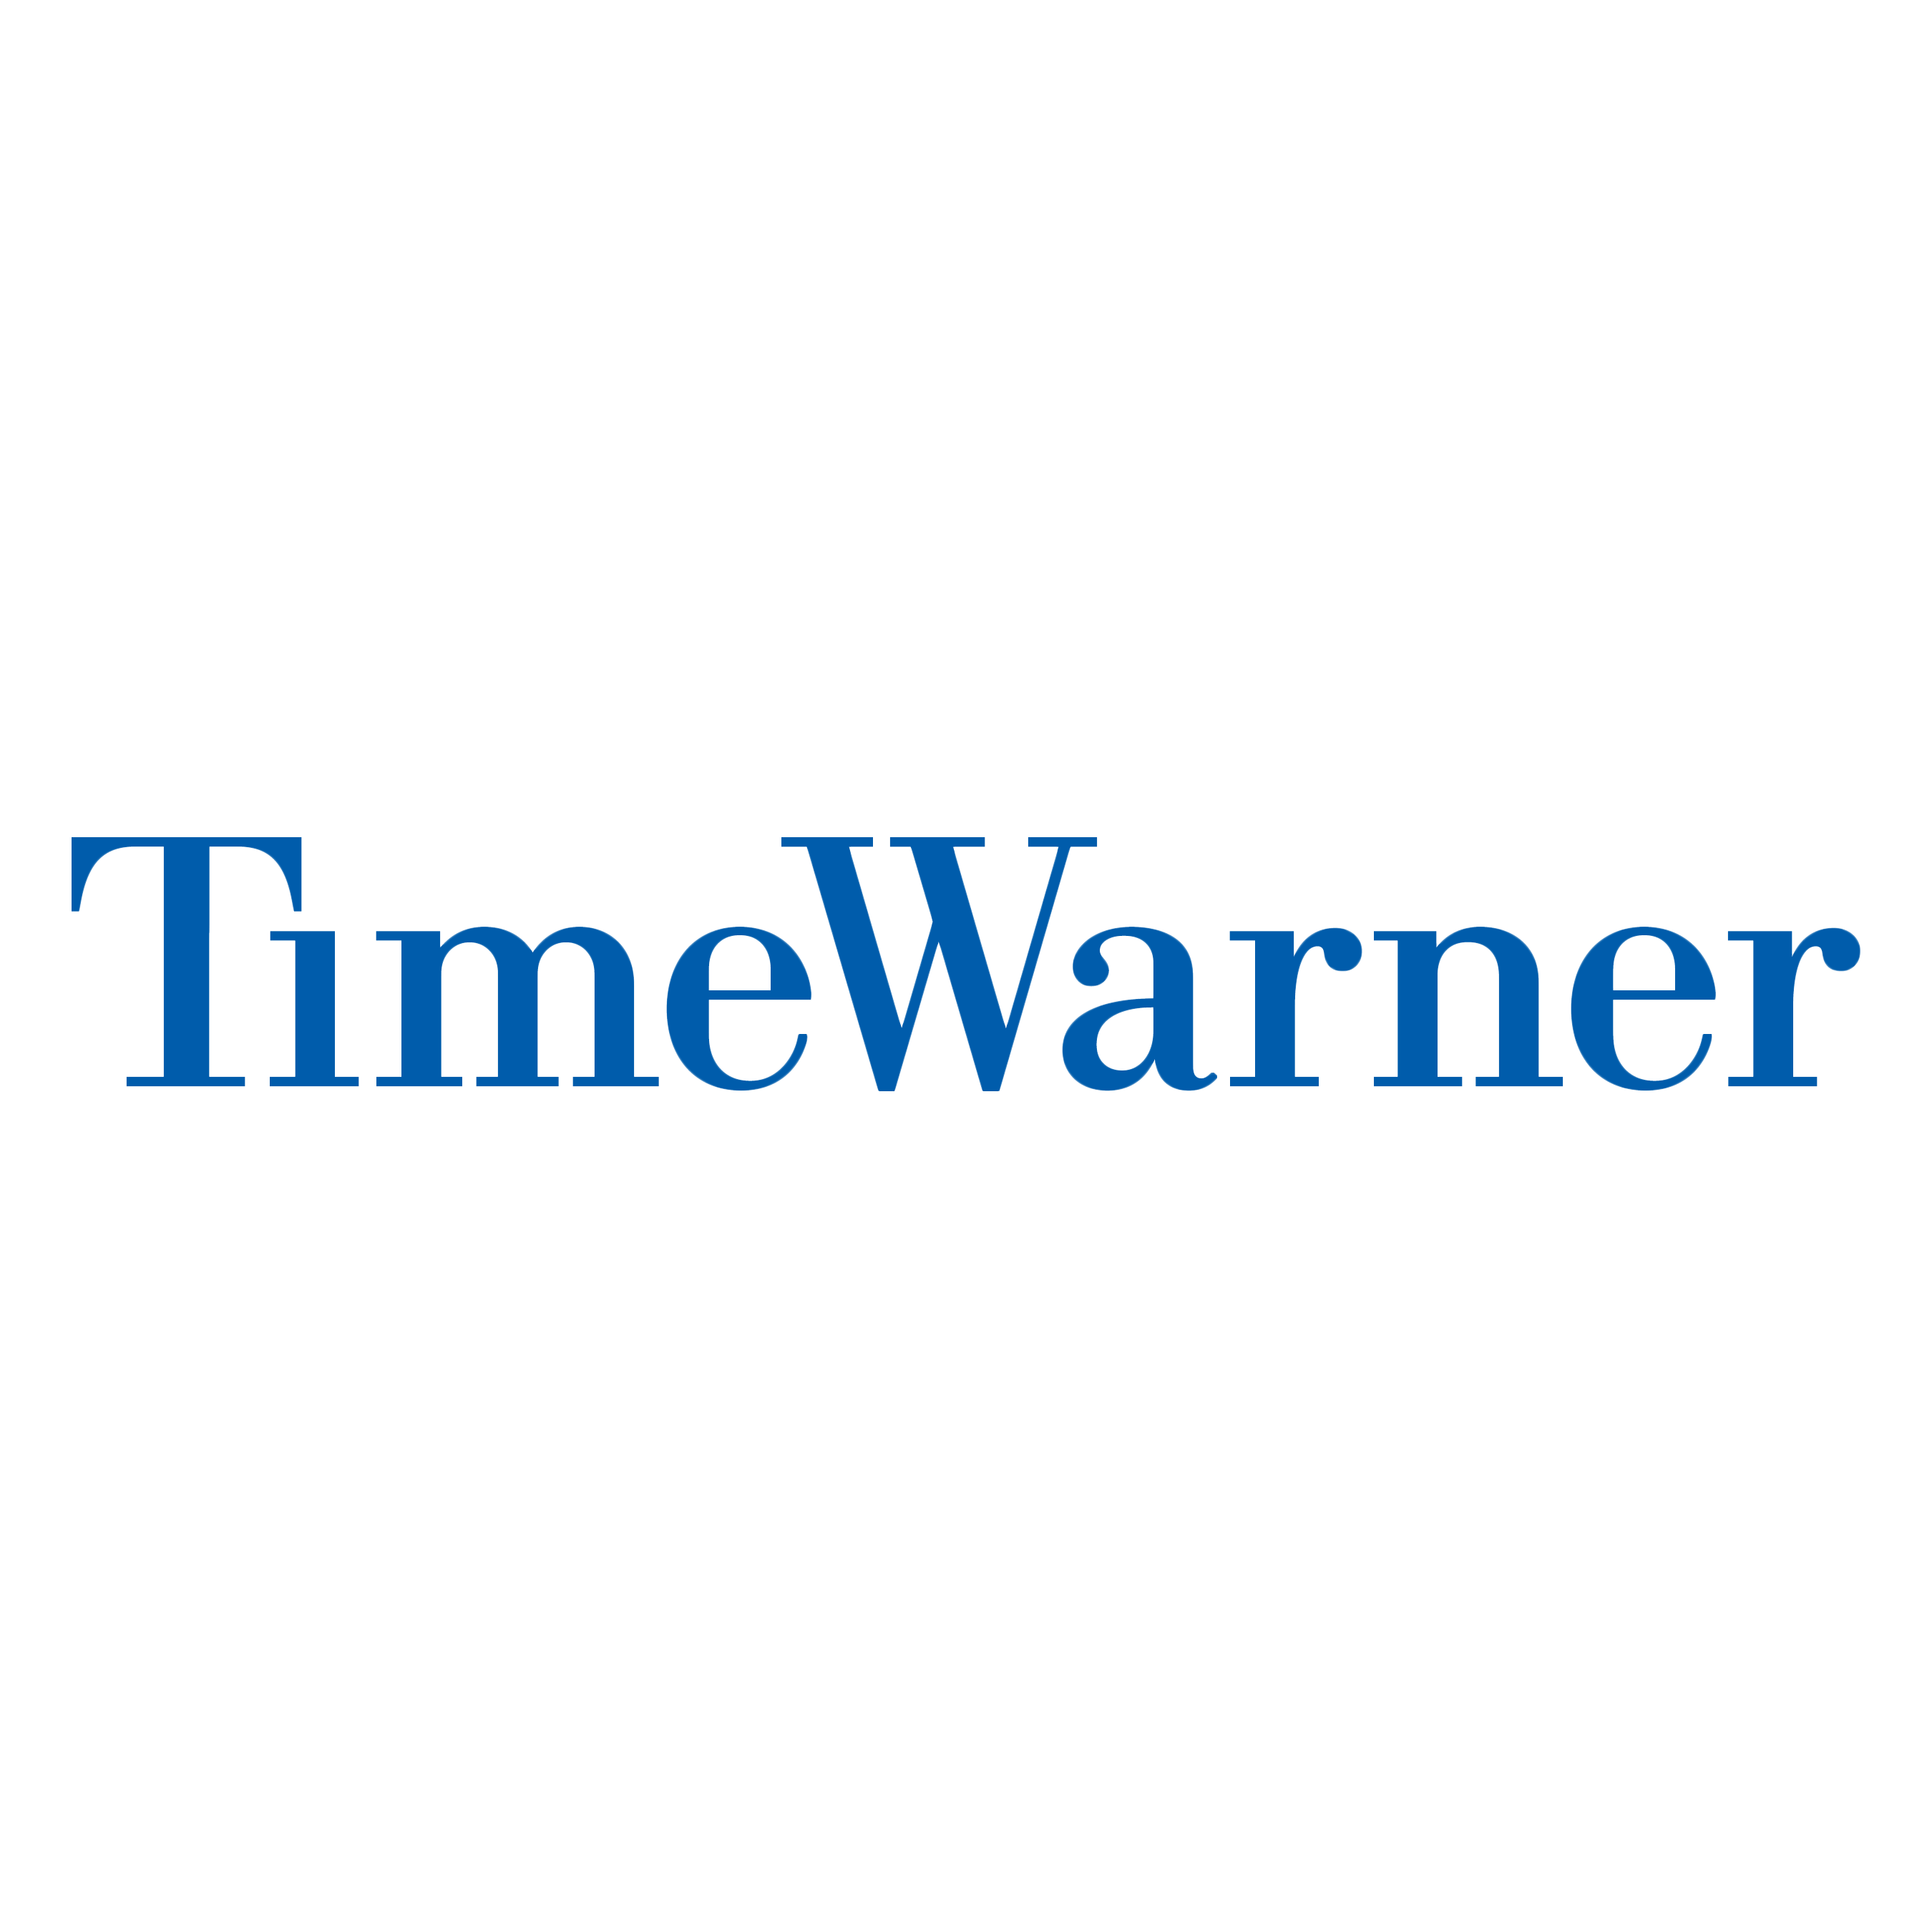 Time Warner Logo - Time-Warner-Logo-sq - Huntbridge